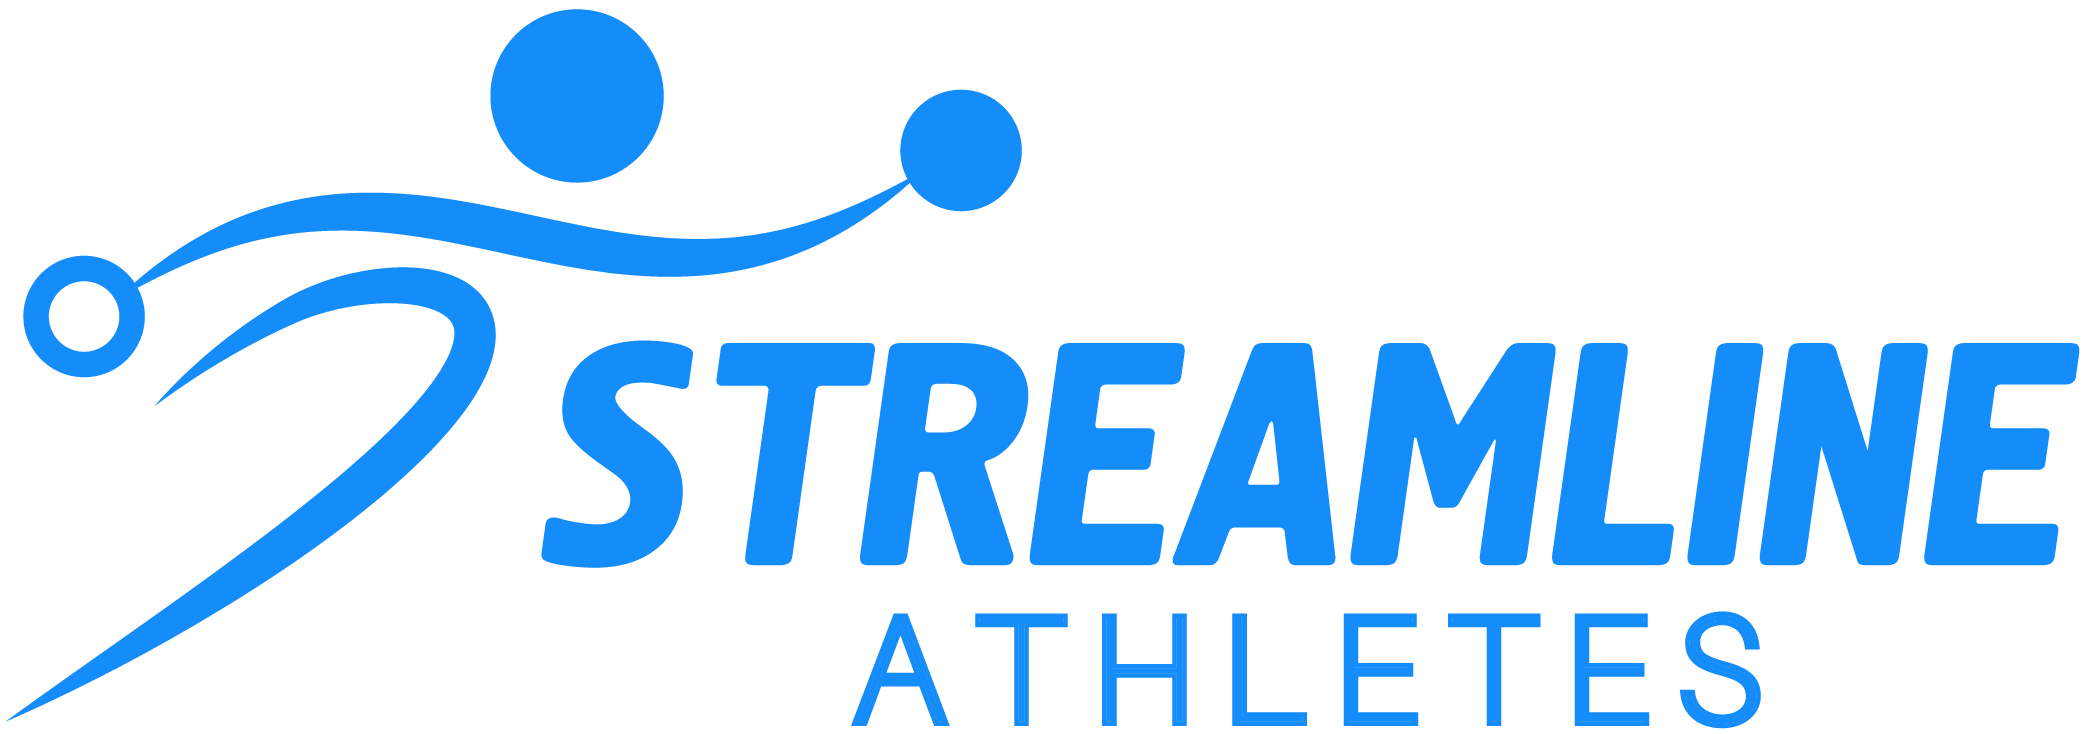 Streamline Athletes